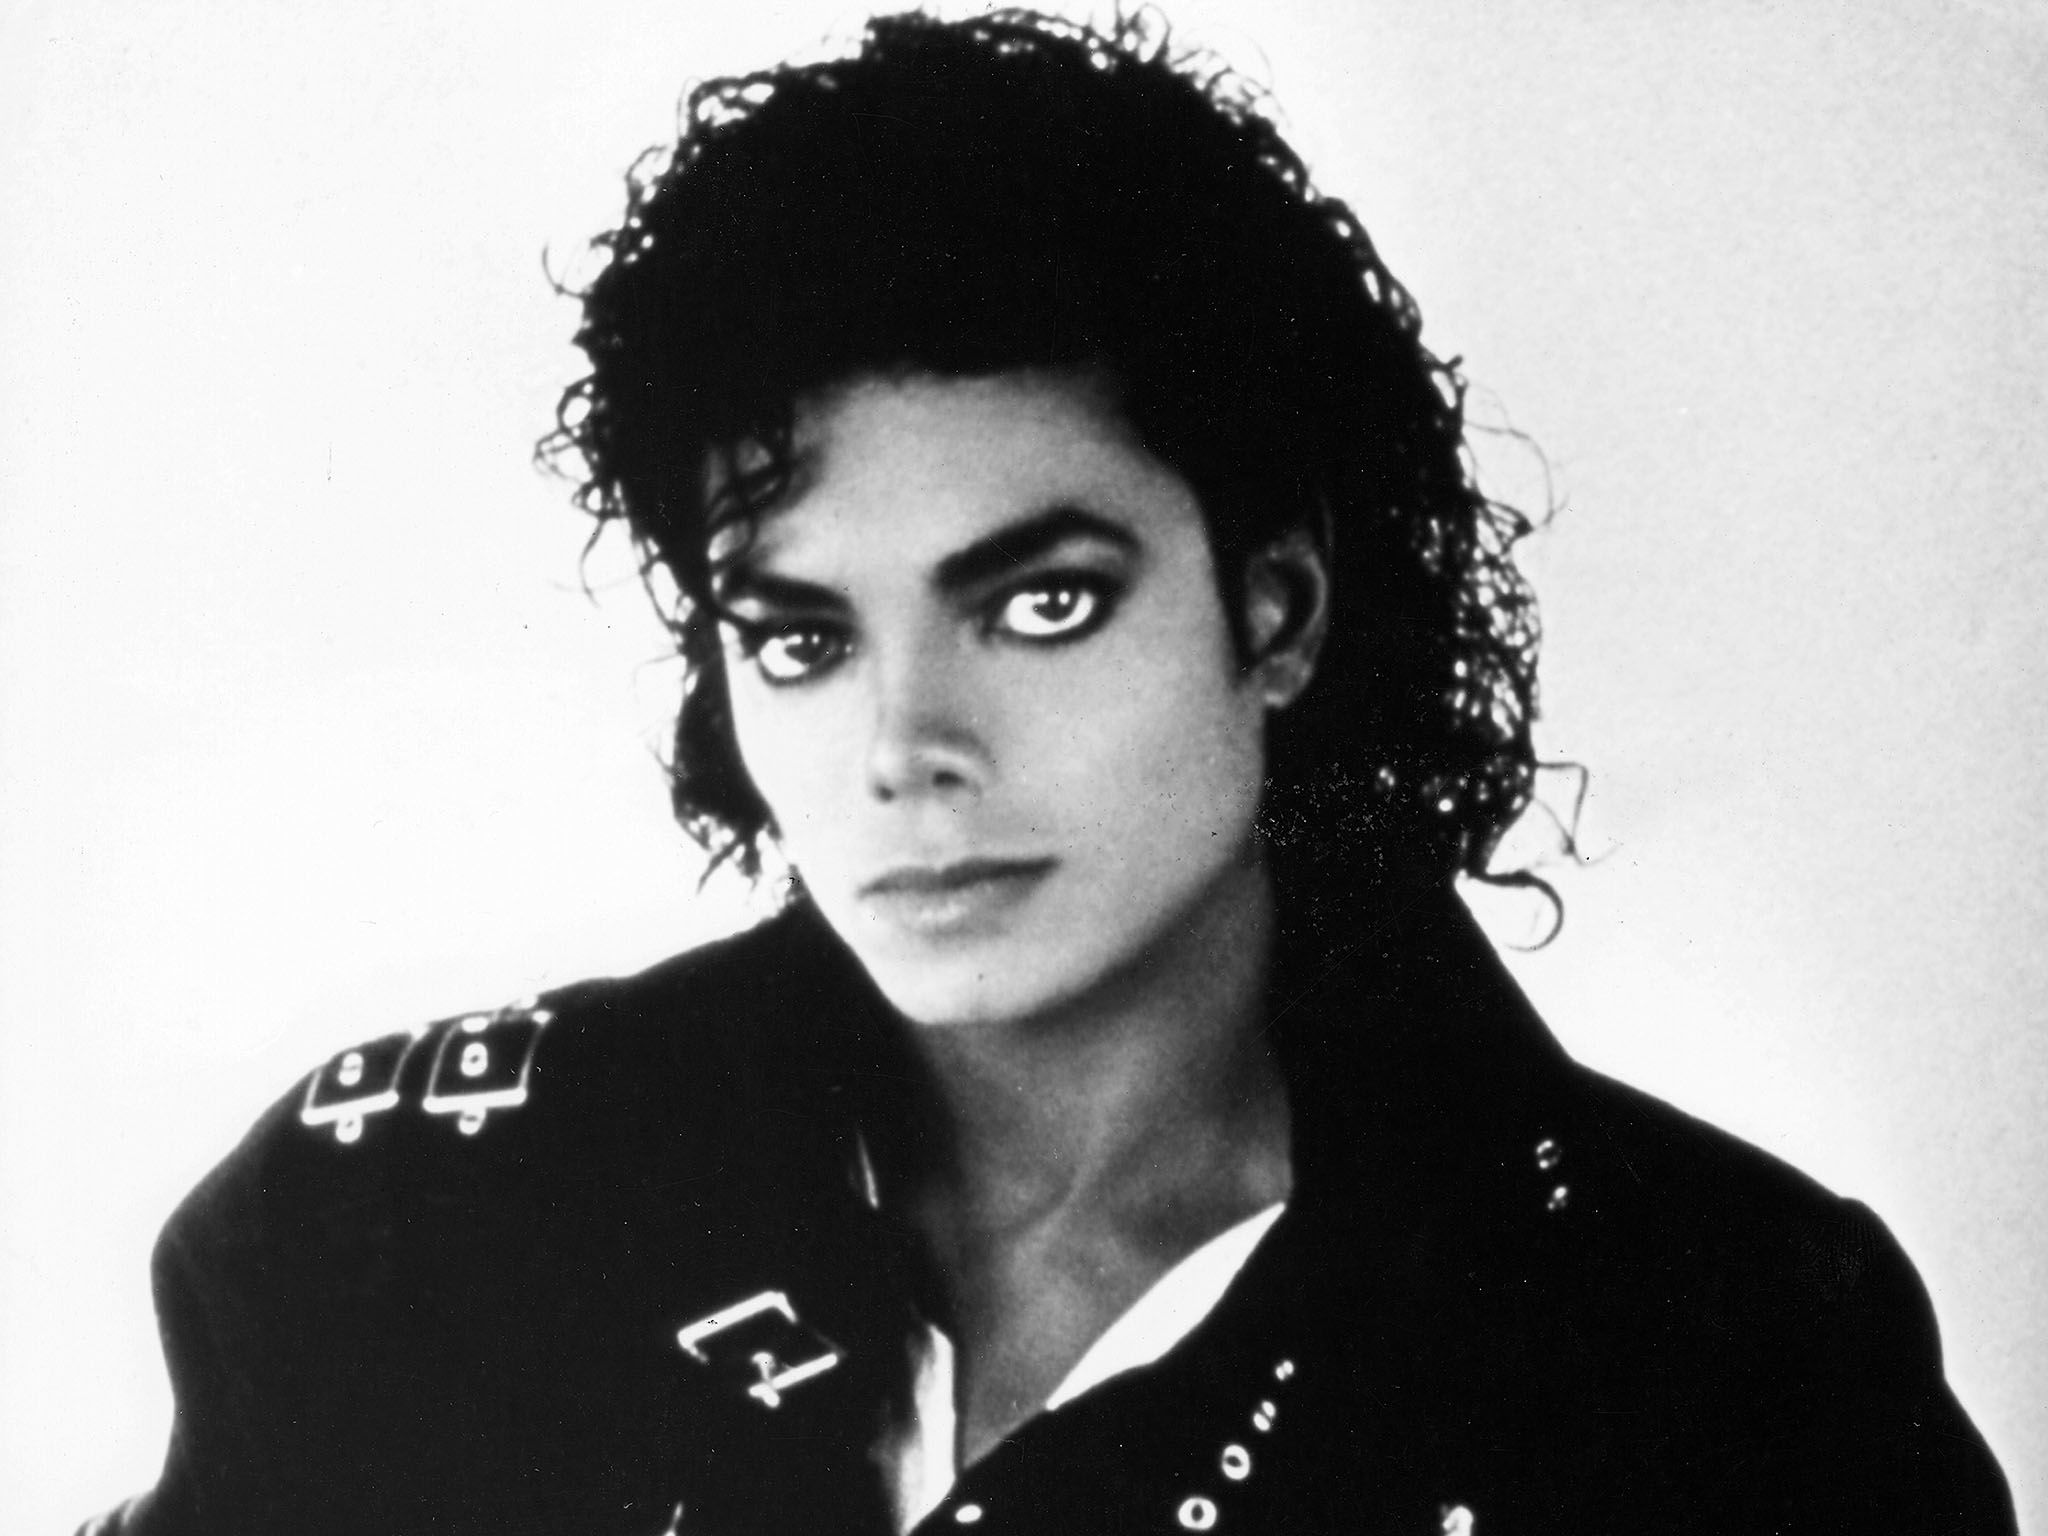 Michael Jackson in 1987. This image is from The 2000s Greatest Tragedies. [Фото дня - Август 2015]